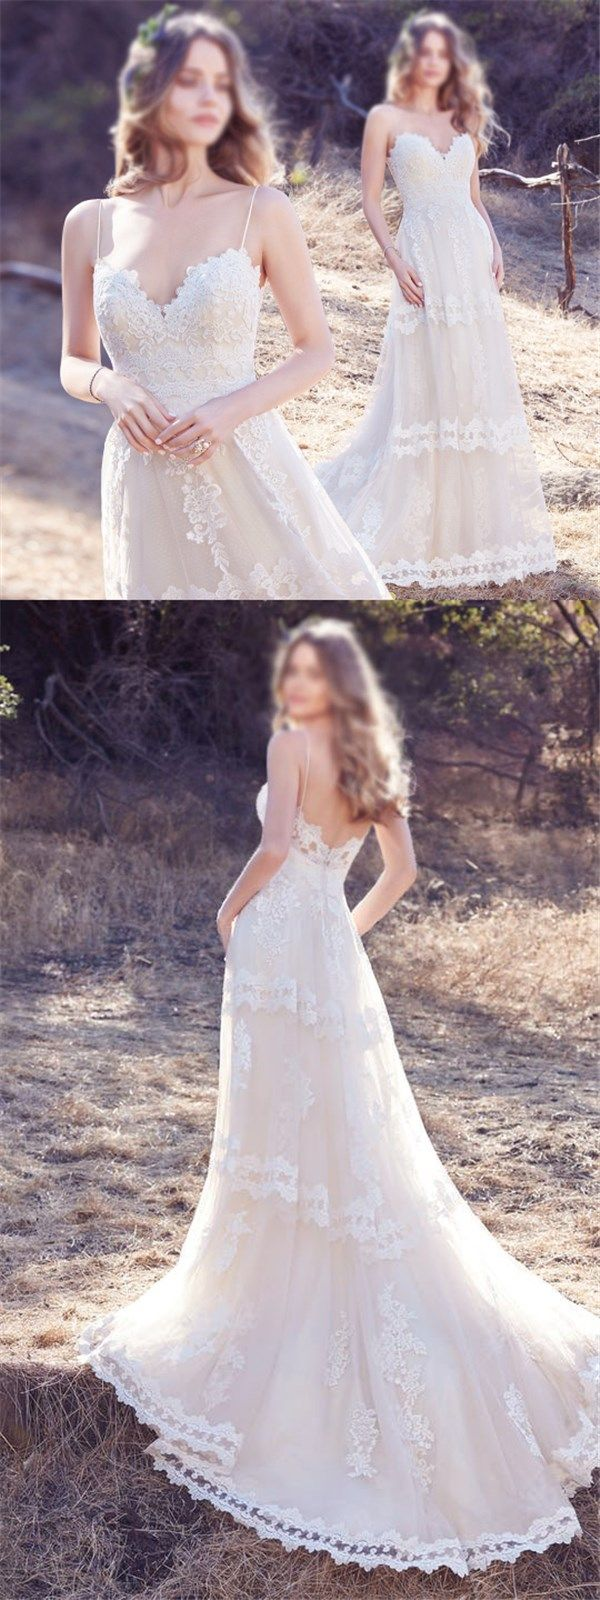 Charming Lace Beach Wedding Dress, A-line Simple Sexy Spaghetti Wedding Dresses, Bridal Dresses, PD0429